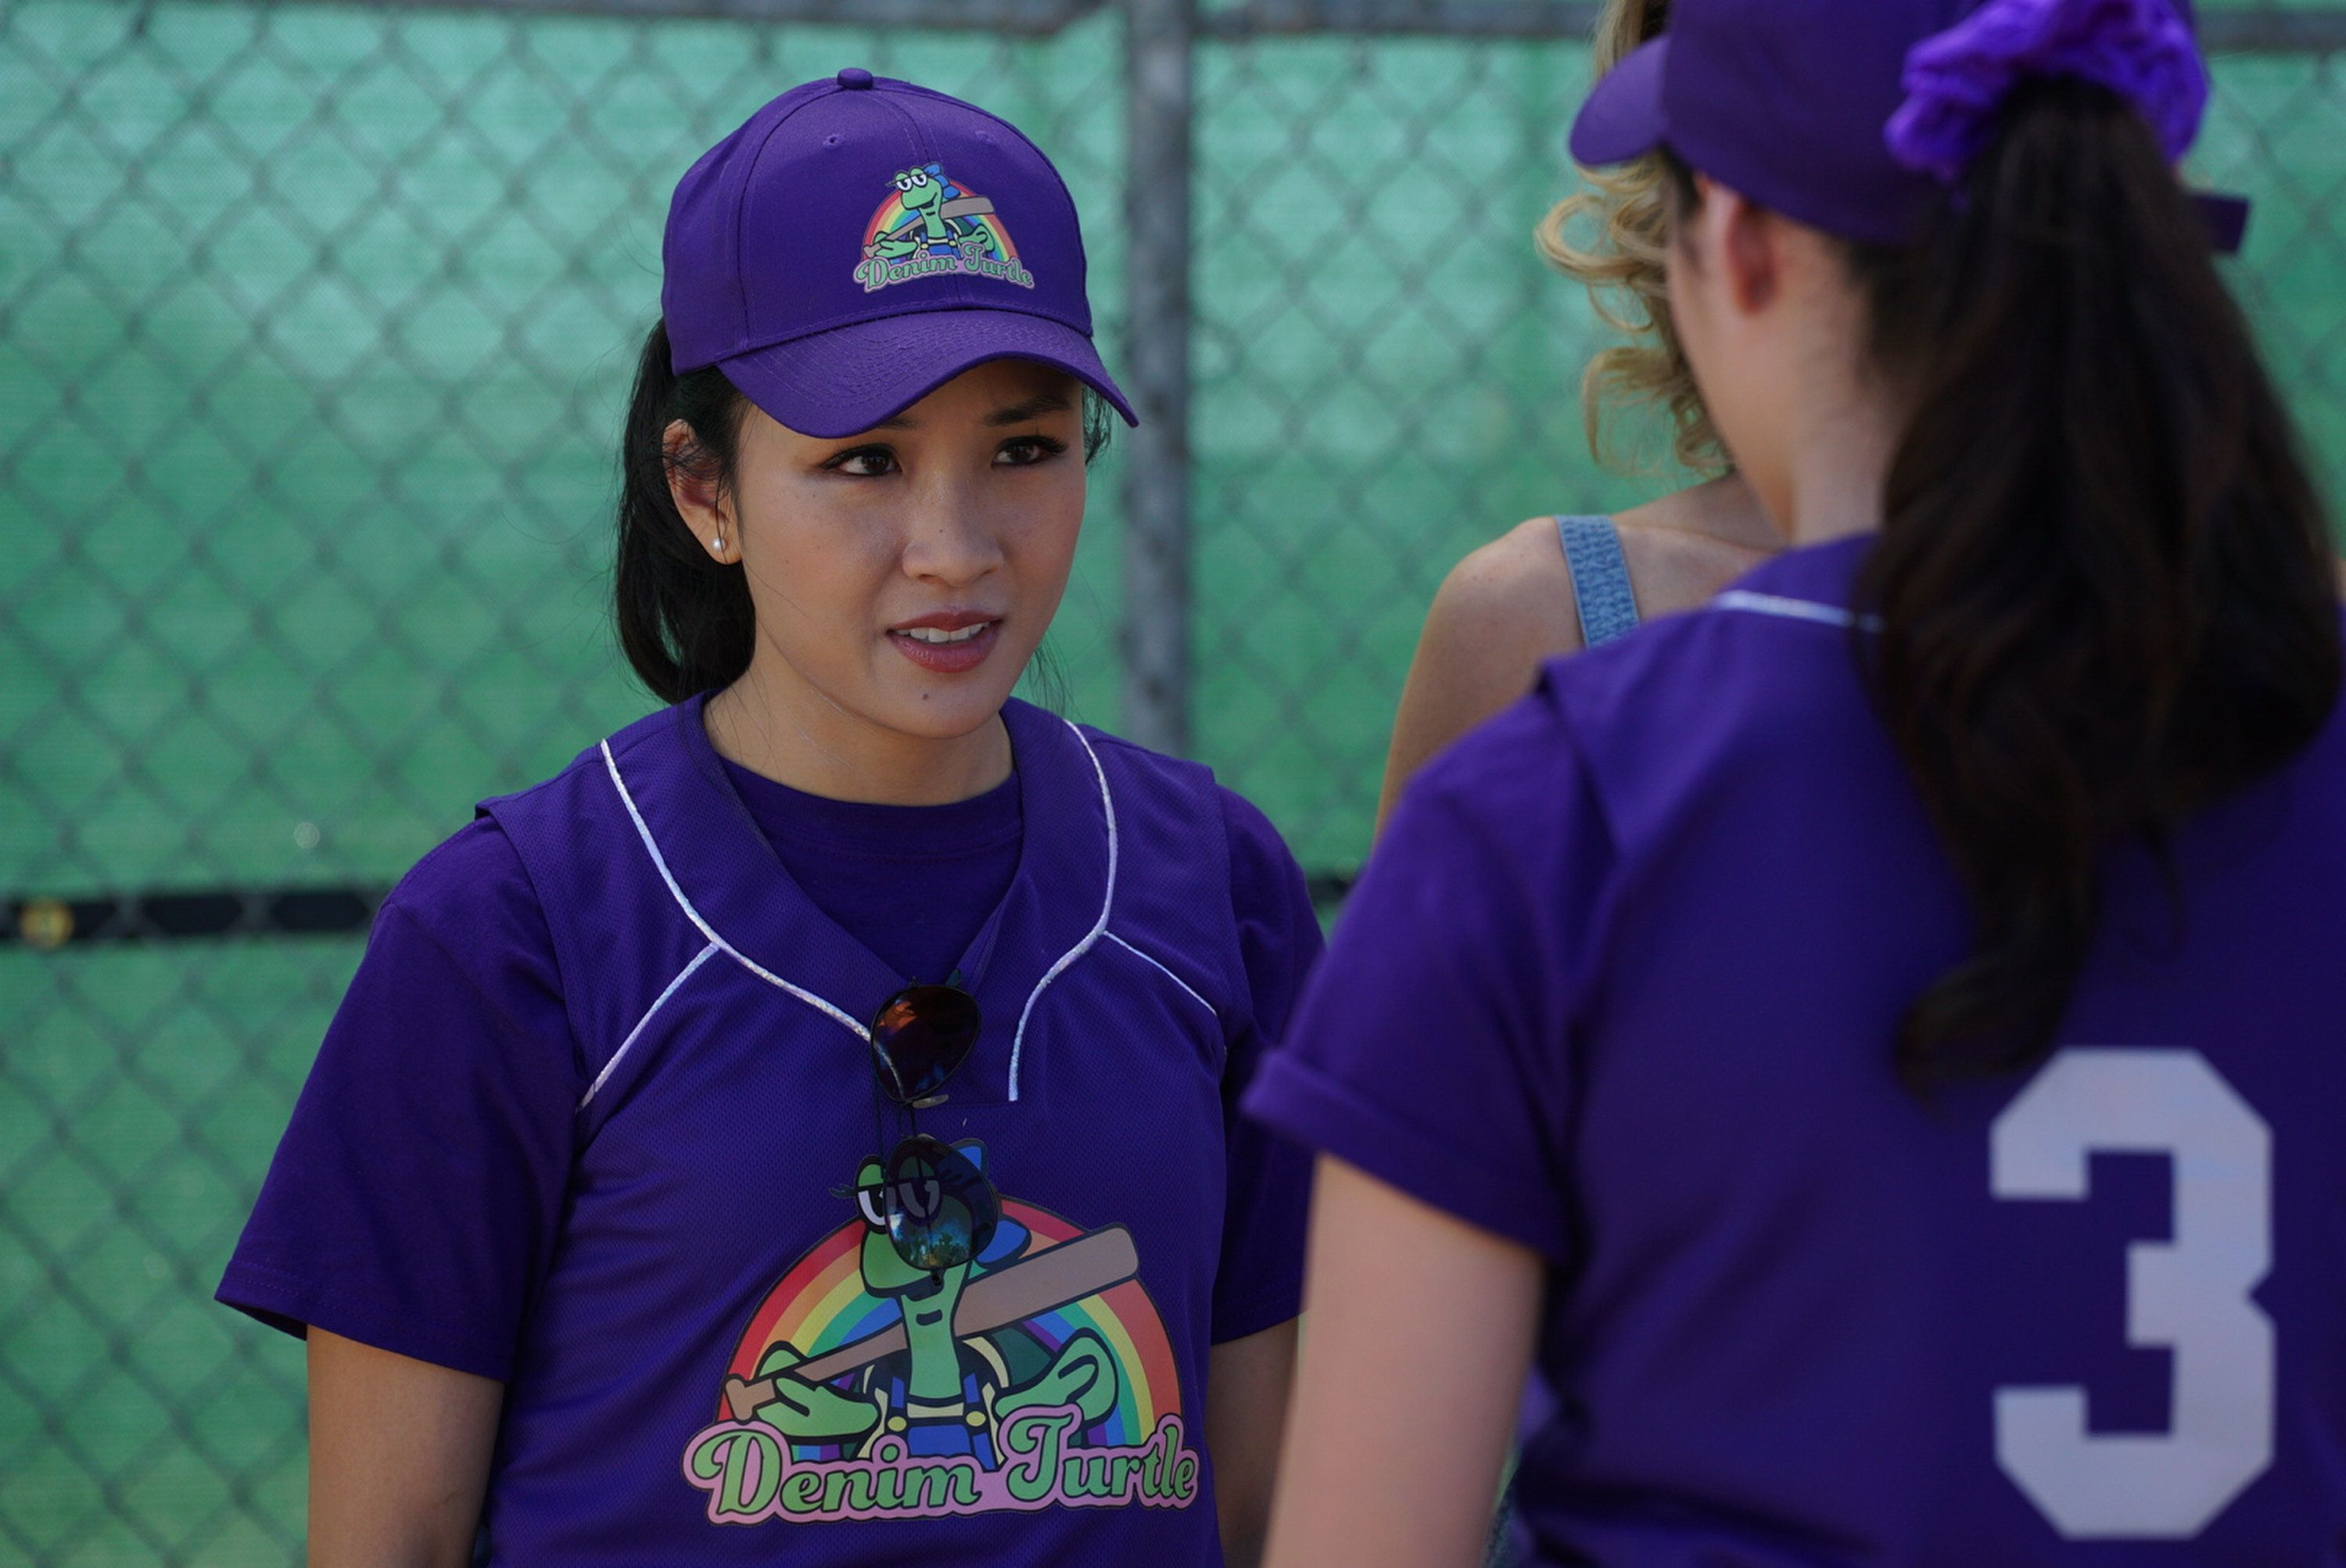 FRESH OFF THE BOAT - 'A League of Her Own' - After coming out of the closet to Honey and Jessica, Nicole struggles with telling Marvin, fearful that her father will be disappointed in her. Meanwhile, Louis wants to manage the Cattleman's Ranch softball team on his own, so Jessica decides to coach the rival team from The Denim Turtle to prove that she is the superior manager. Chaos is sure to ensue when everyone gathers for the big game at the Greater Orlando Bar and Restaurant tournament on 'Fresh Off the Boat' airing on TUESDAY, NOVEMBER 7 (8:30-9:00 p.m. EDT). (Richard Cartwright/ABC via Getty Images) CONSTANCE WU